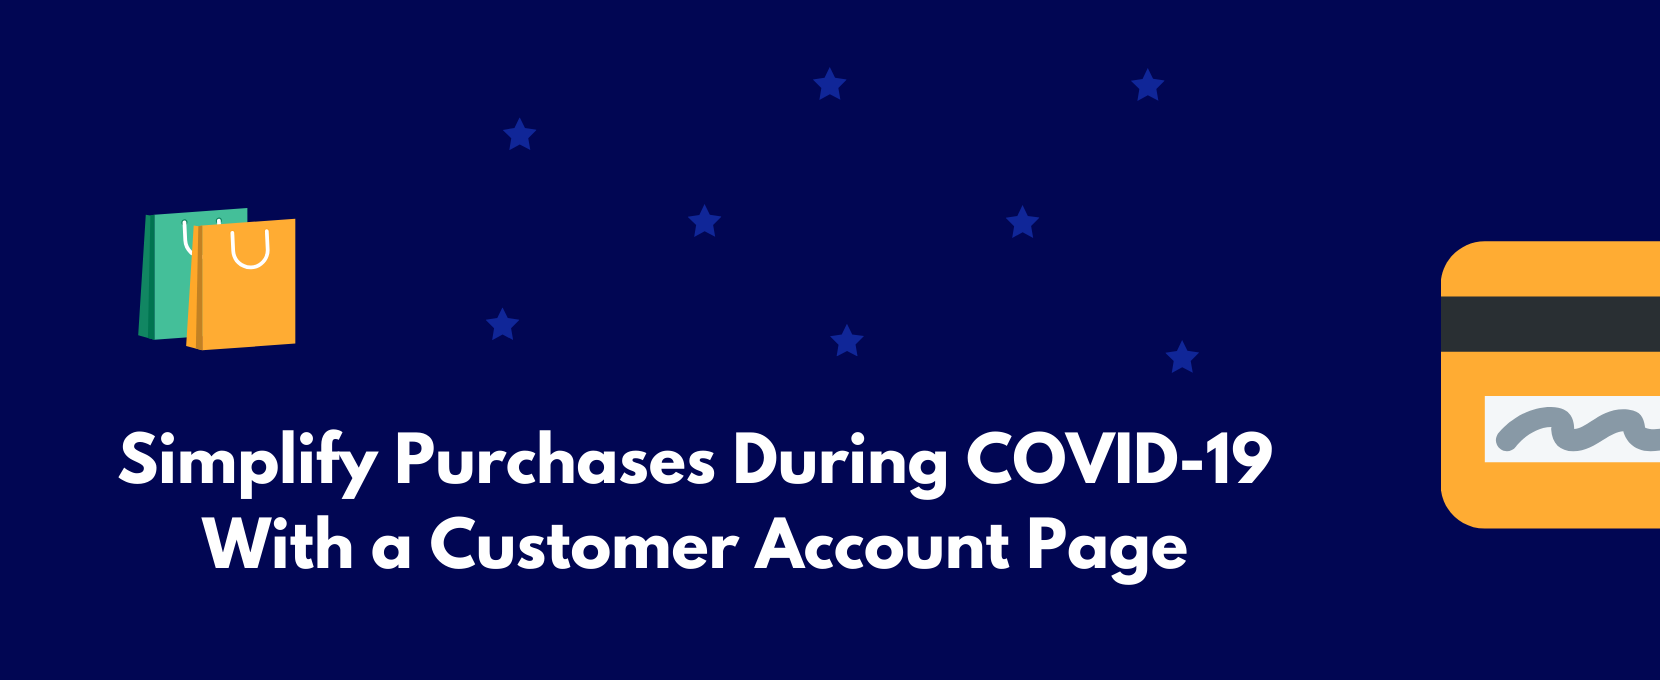 Make it easier for customers to make purchases during COVID-19 with a customer account page